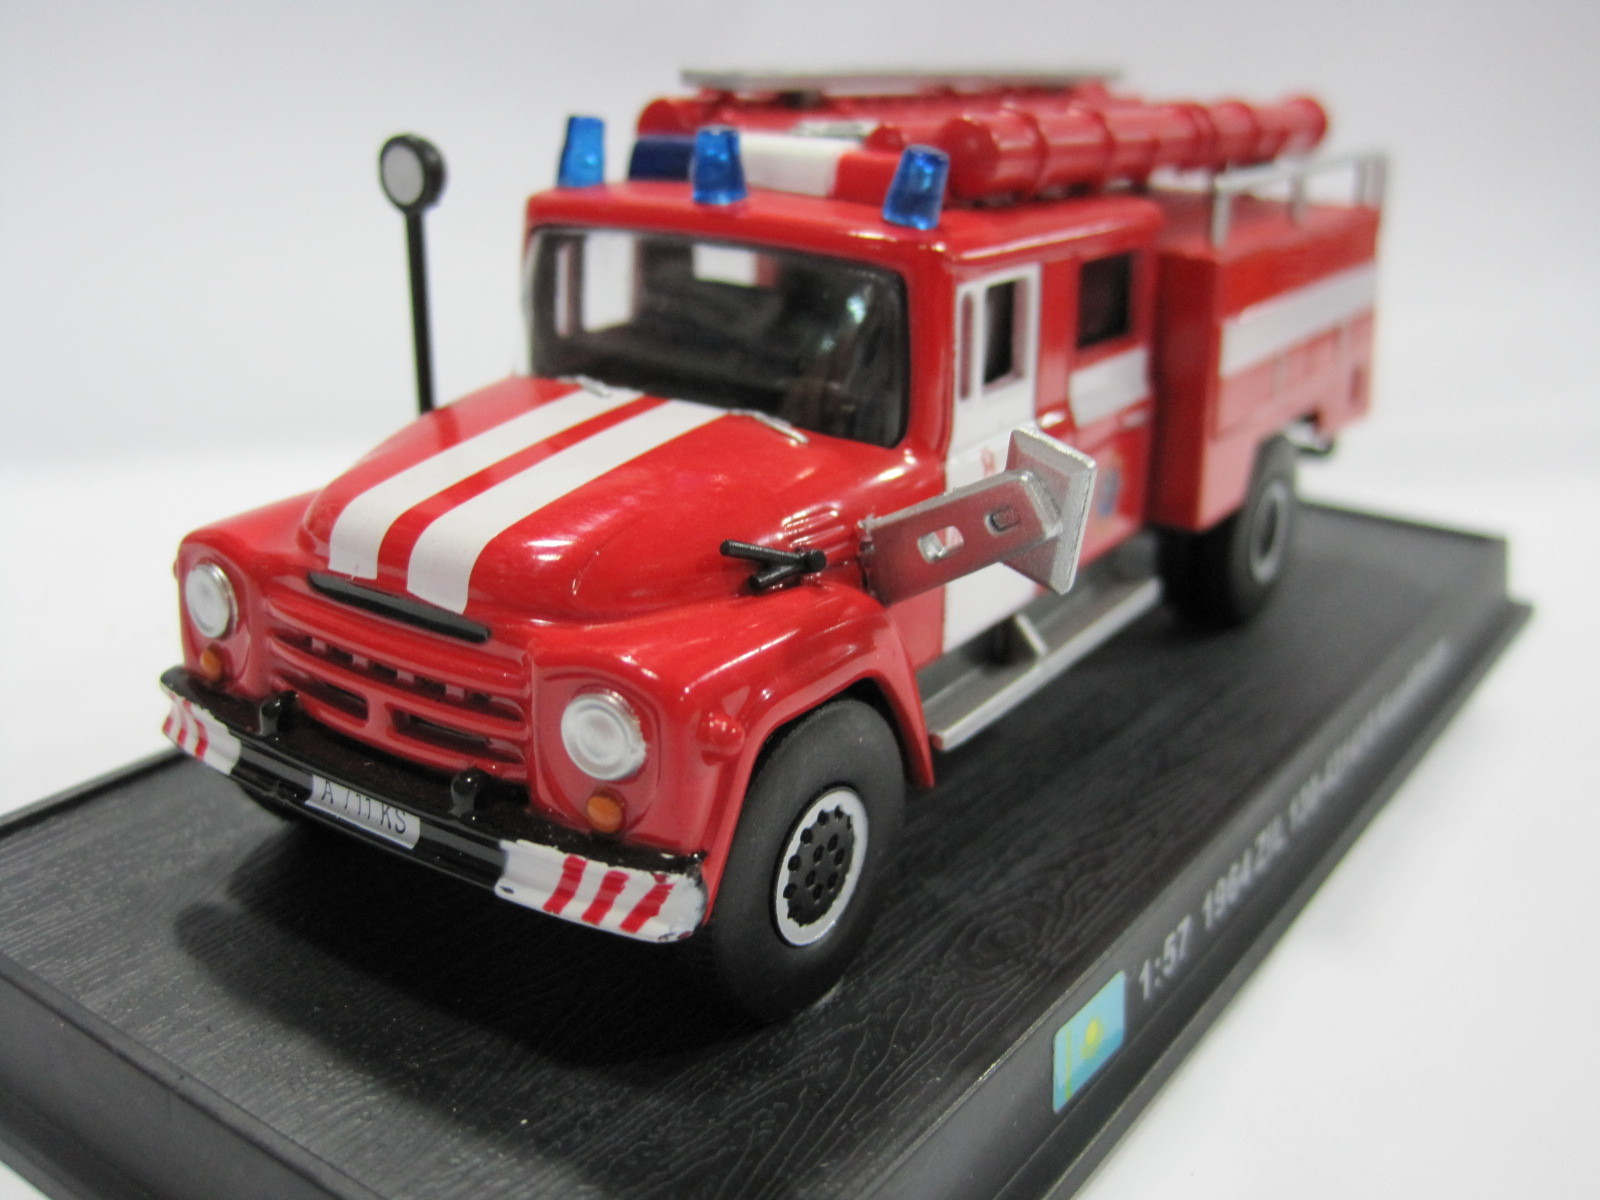 AMER 1/57 Scale 1964 ZiL 130-431410 Kazakhstan Fire Engine Diecast Metal Car Model Toy F ...